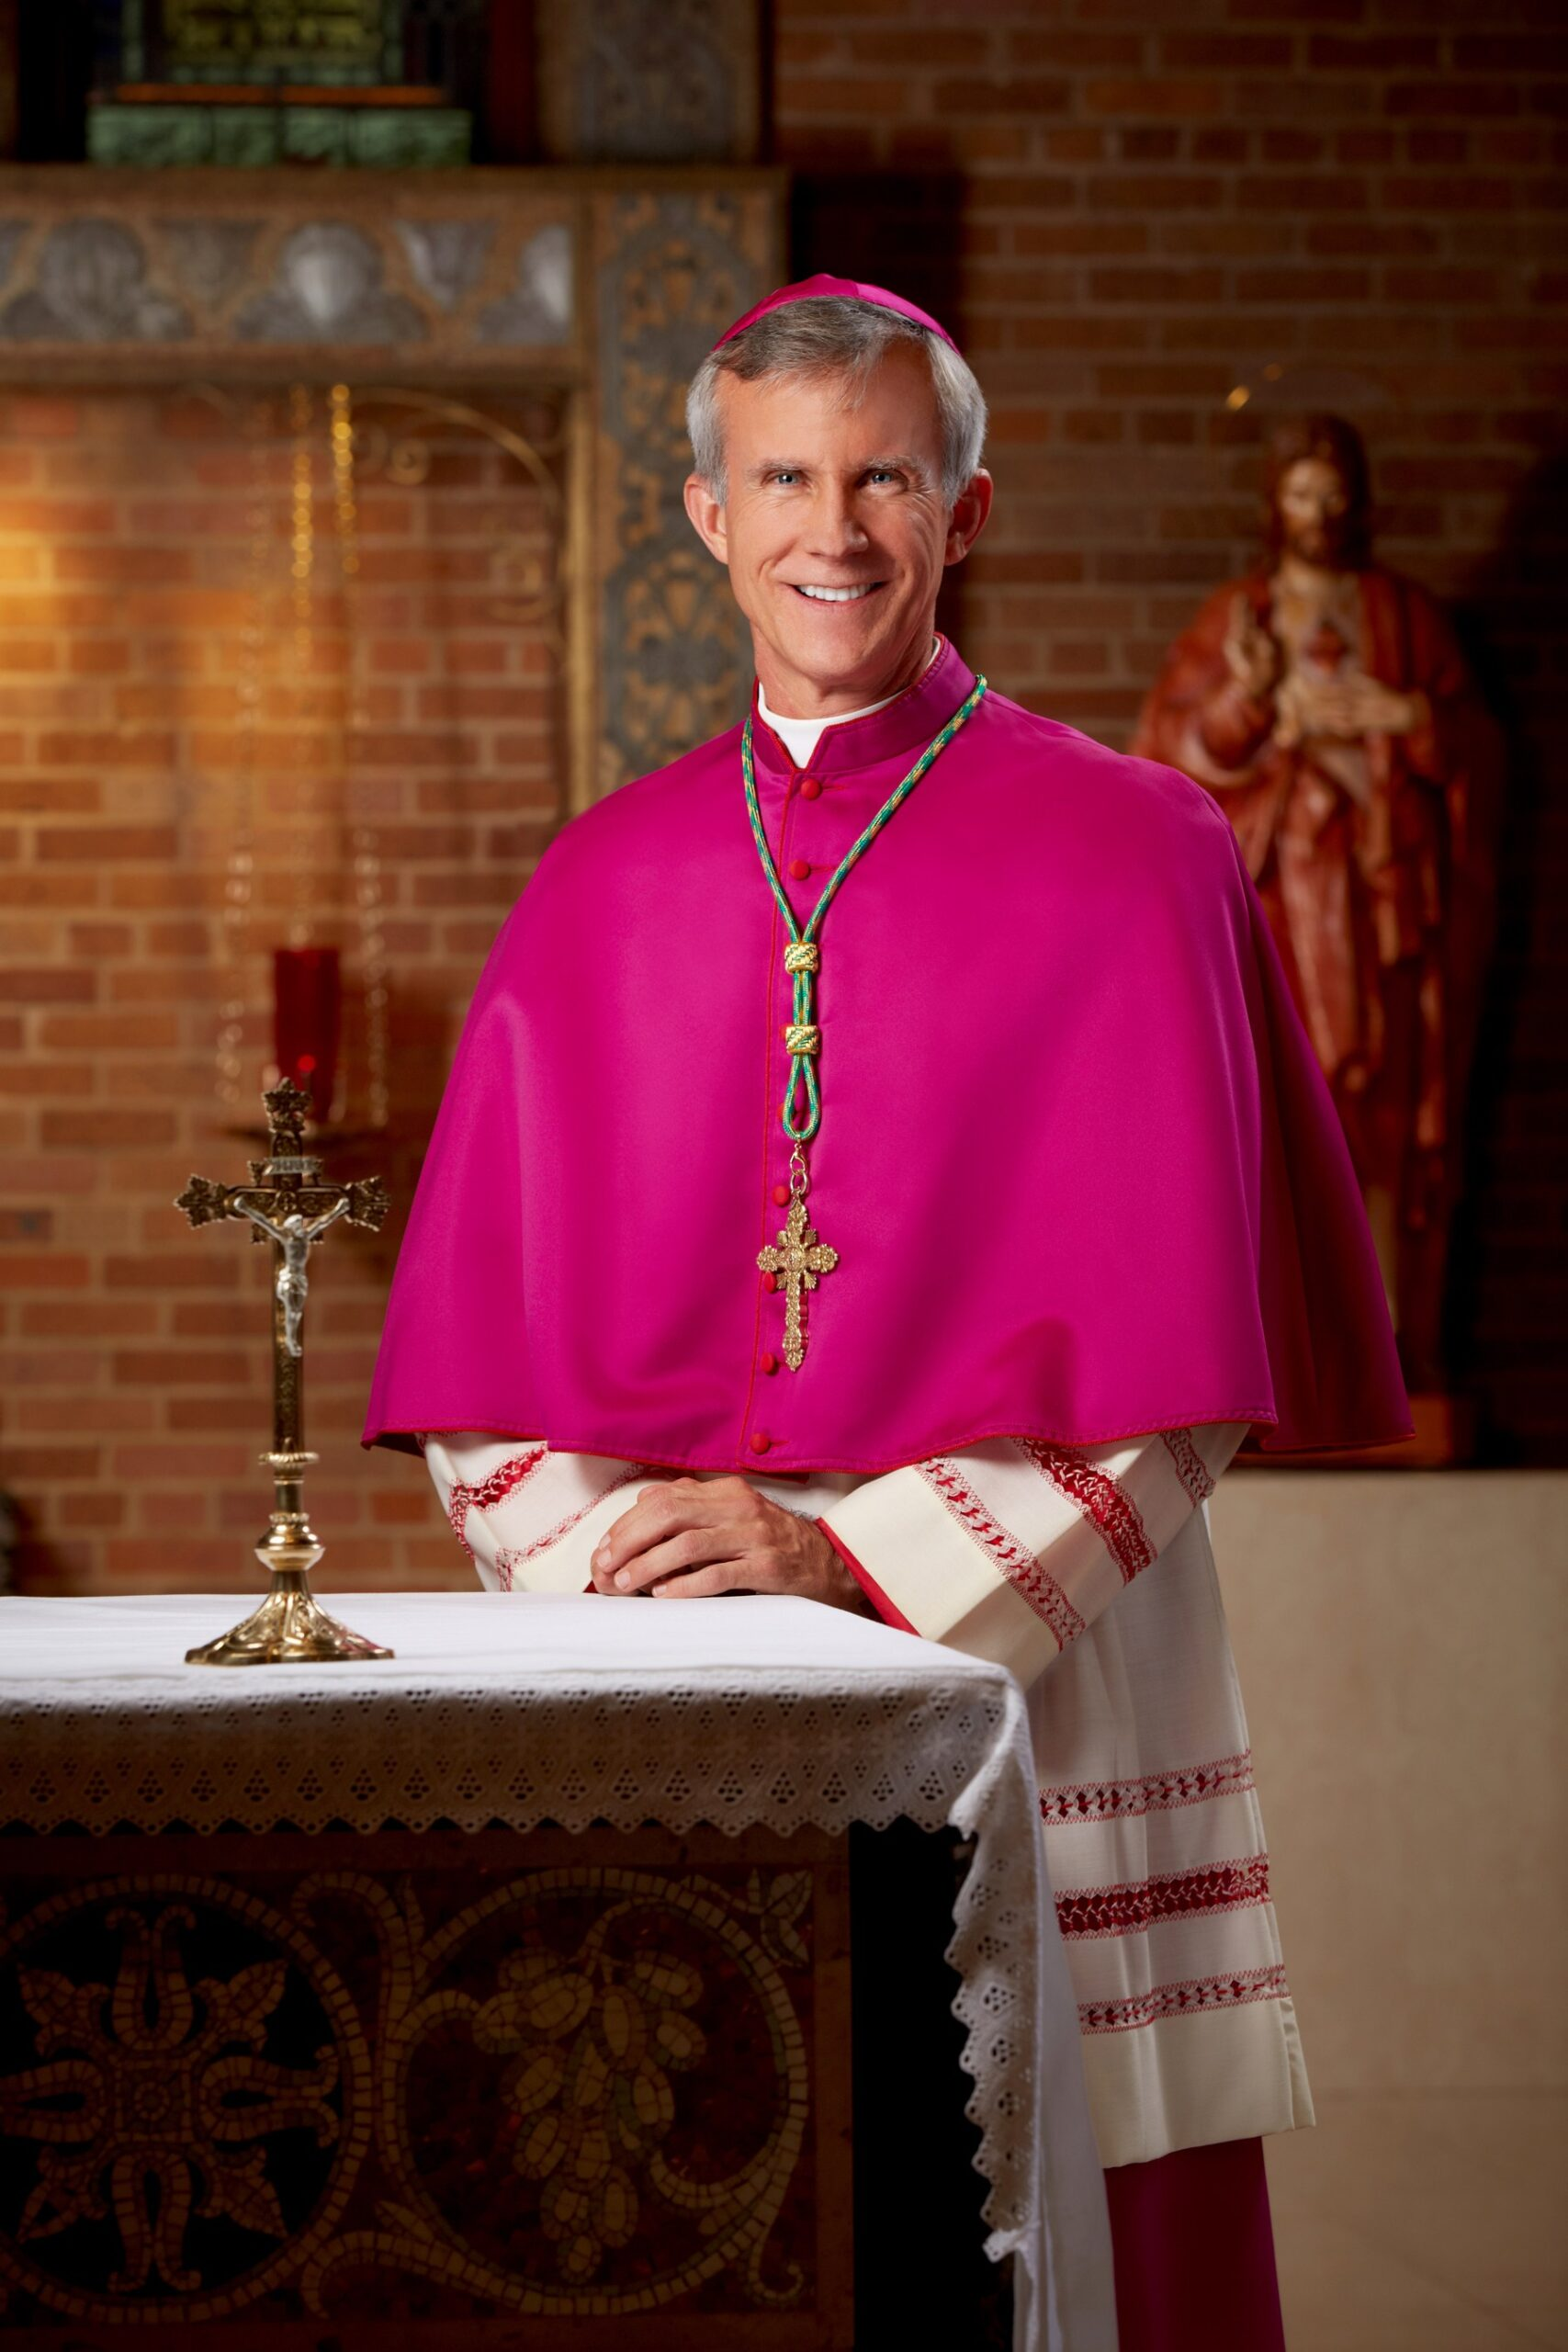 Bishop Strickland